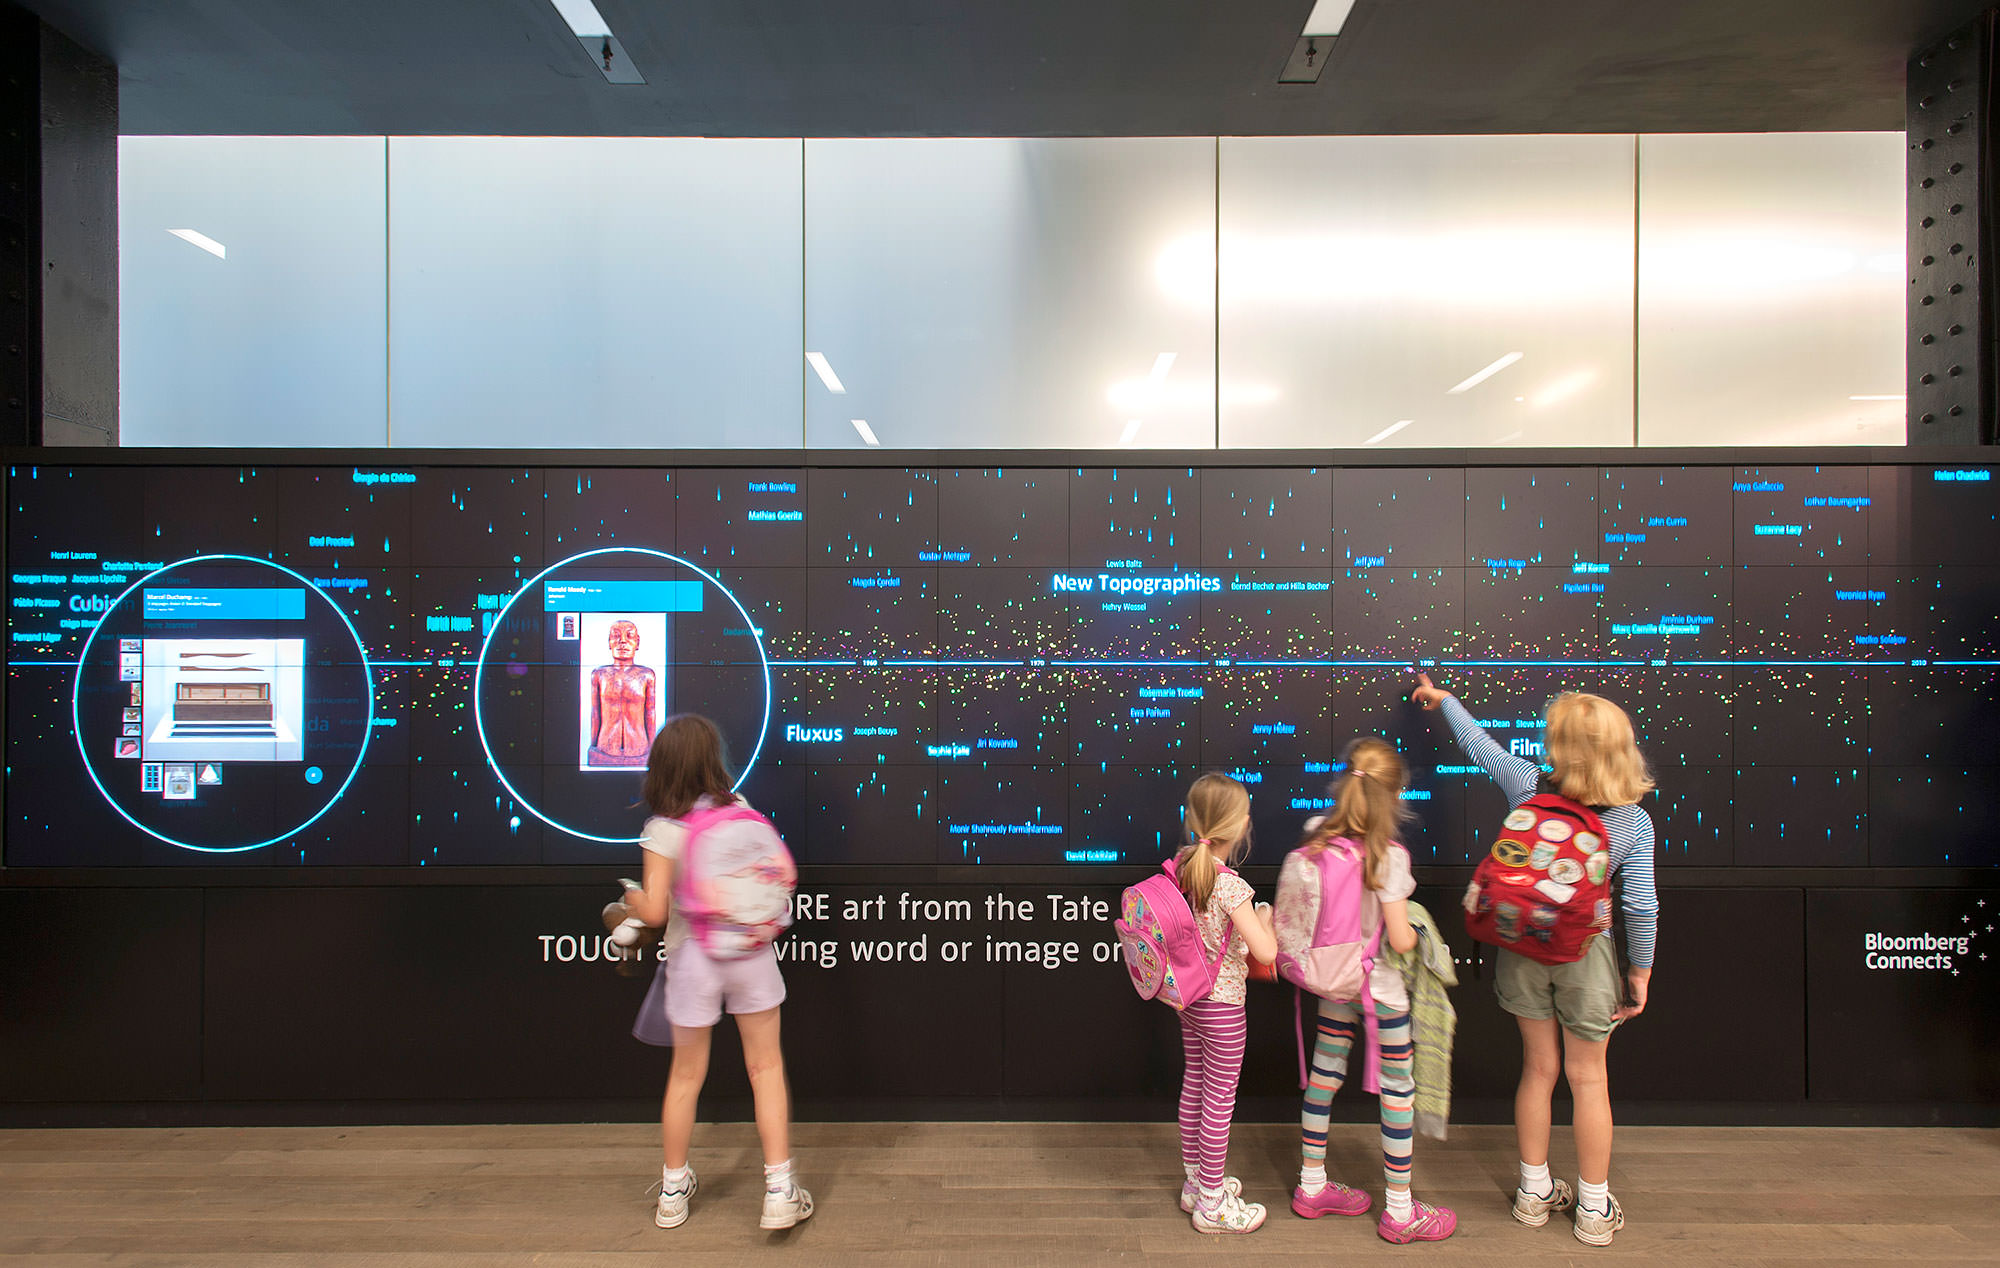 Local kids interact with the Tate's Timeline of Modern Art history, a Bloomberg Connects digital platform, part of Tate Modern's expanded partnership with Bloomberg Philanthropies in 2015